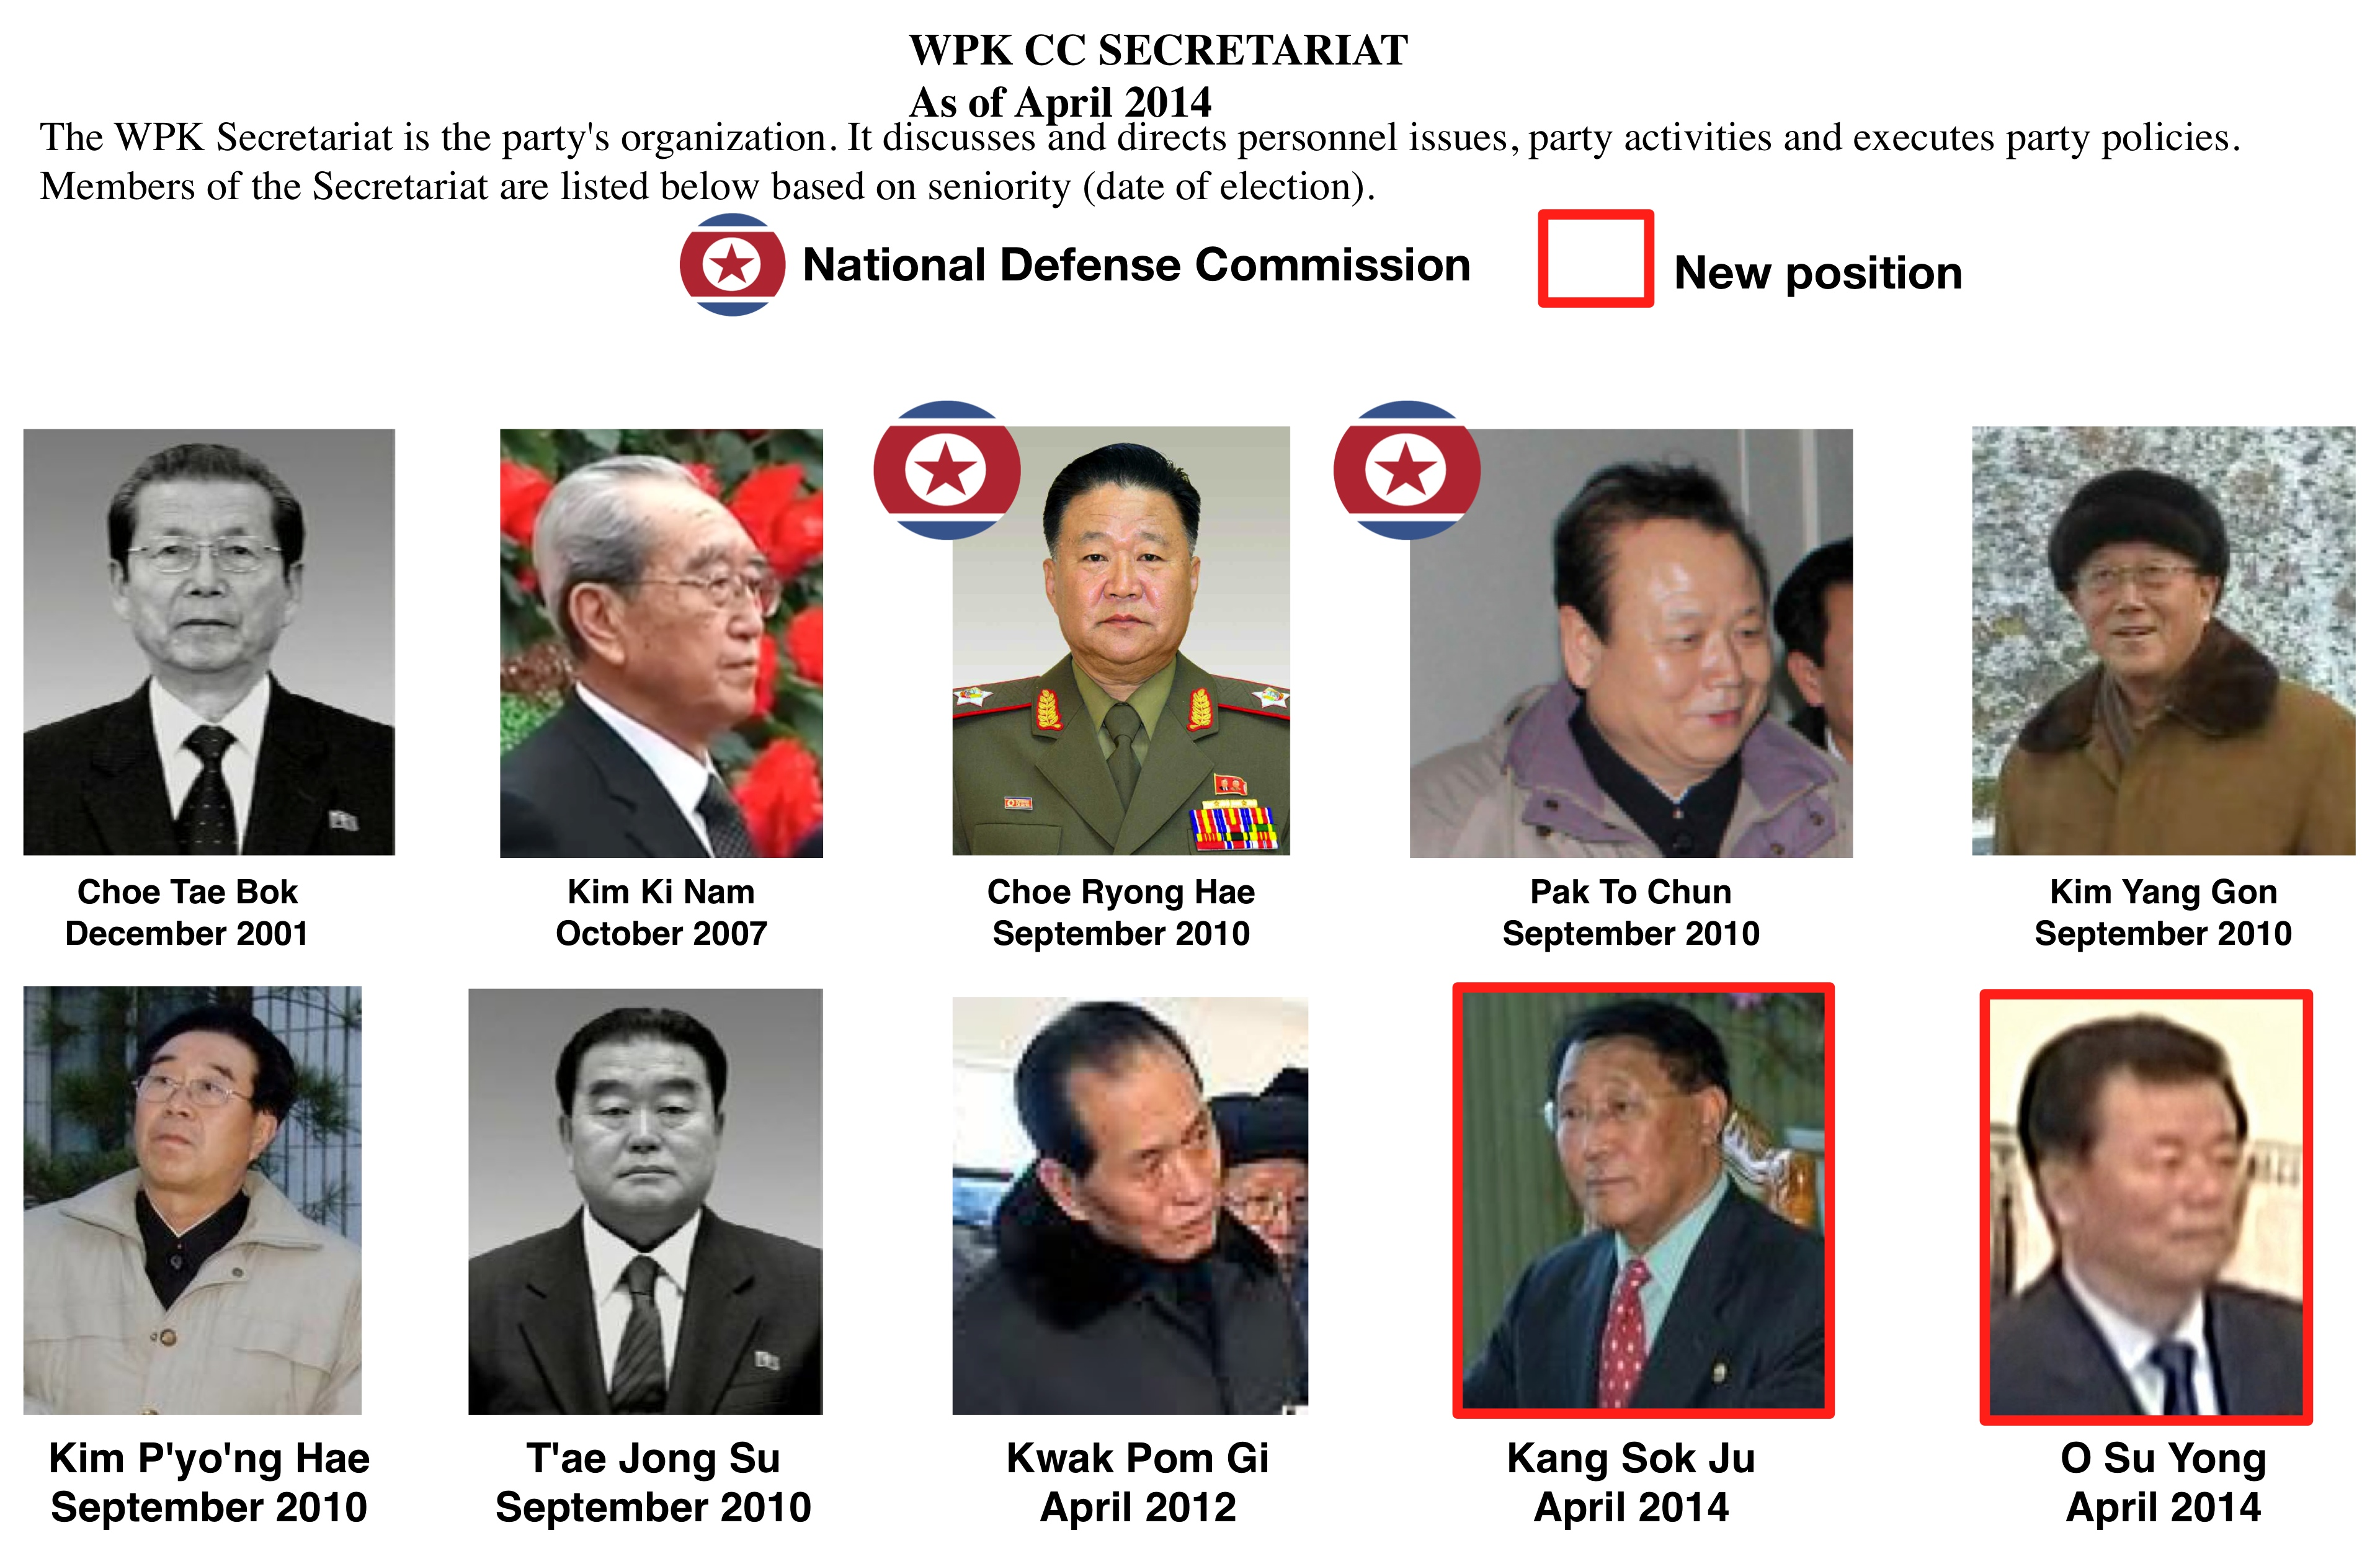 WPK Central Committee Secretariat (Graphic: NK Leadership Watch)